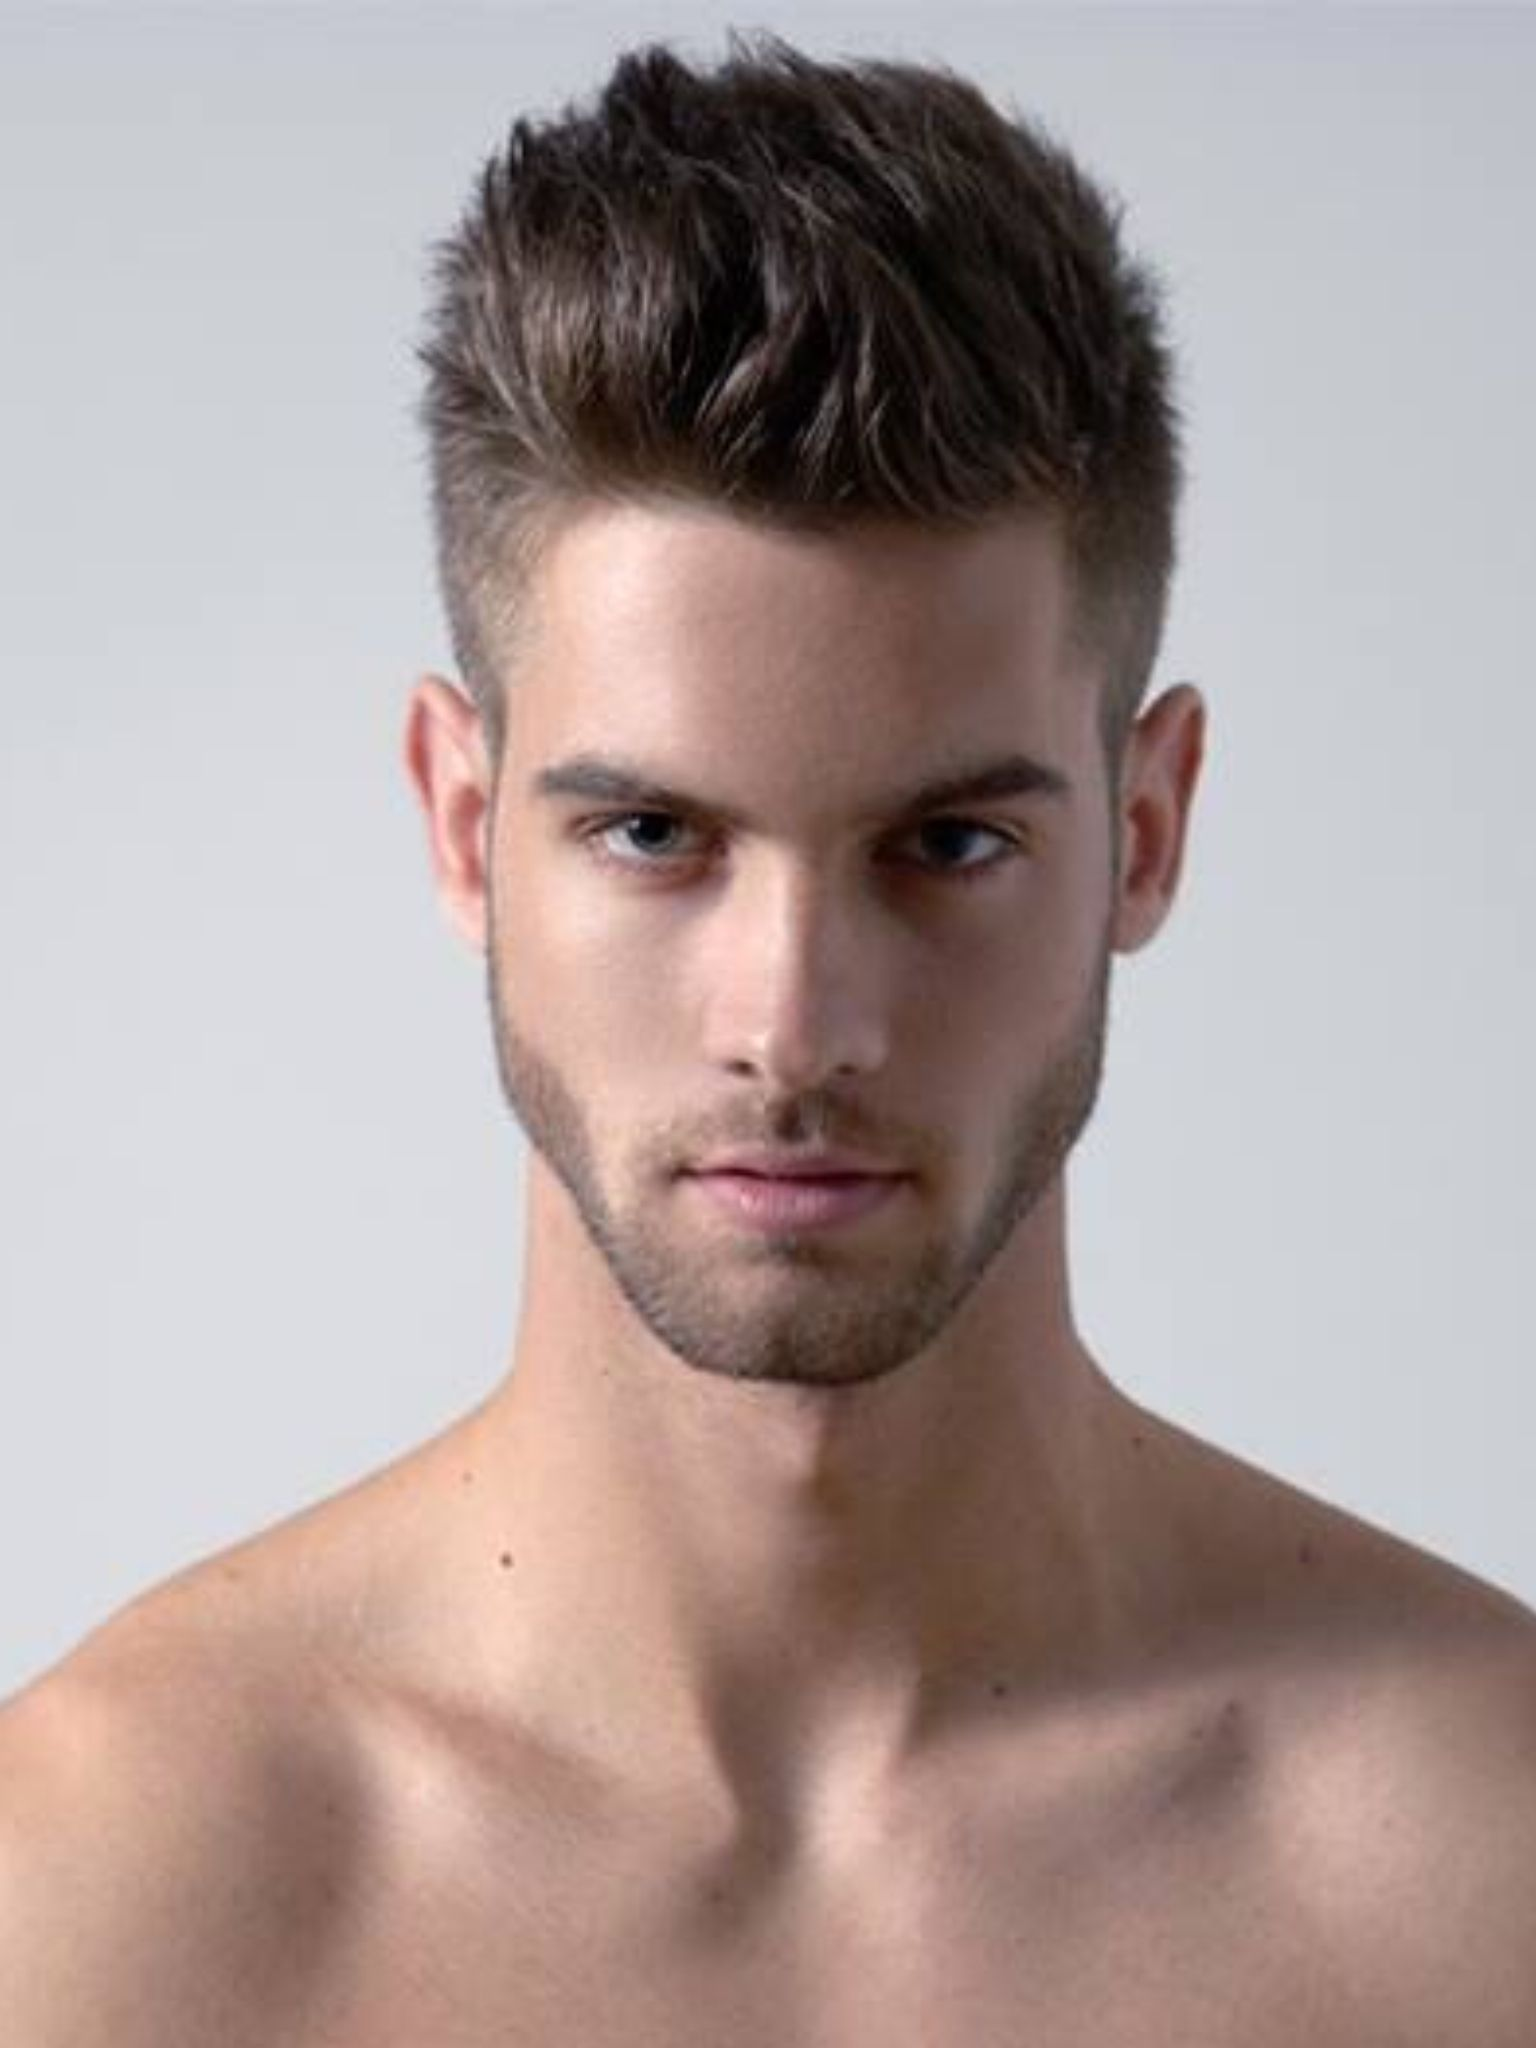 hot haircuts for boys hairstyles for guys fade haircut 5250 | bb7bc675dcef50f0531f84495d9196c9